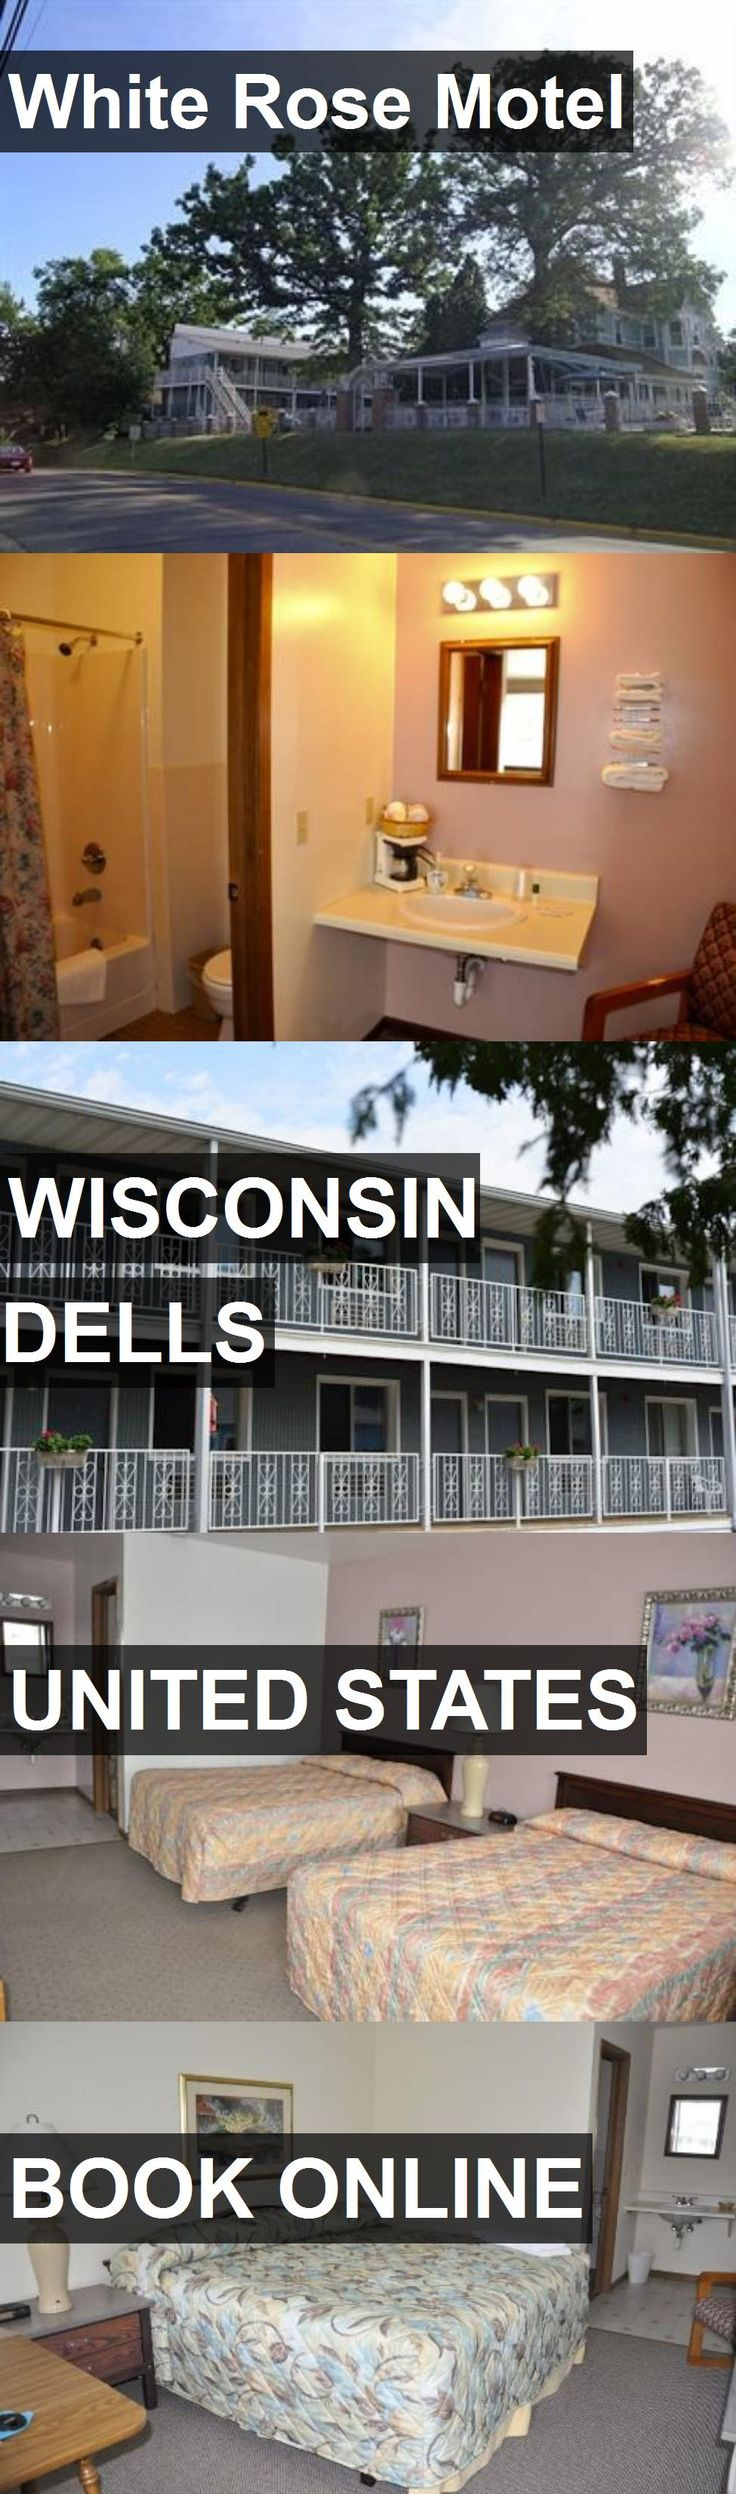 Hotel White Rose Motel in Wisconsin Dells, United States. For more information, photos, reviews and best prices please follow the link. #UnitedStates #WisconsinDells #WhiteRoseMotel #hotel #travel #vacation